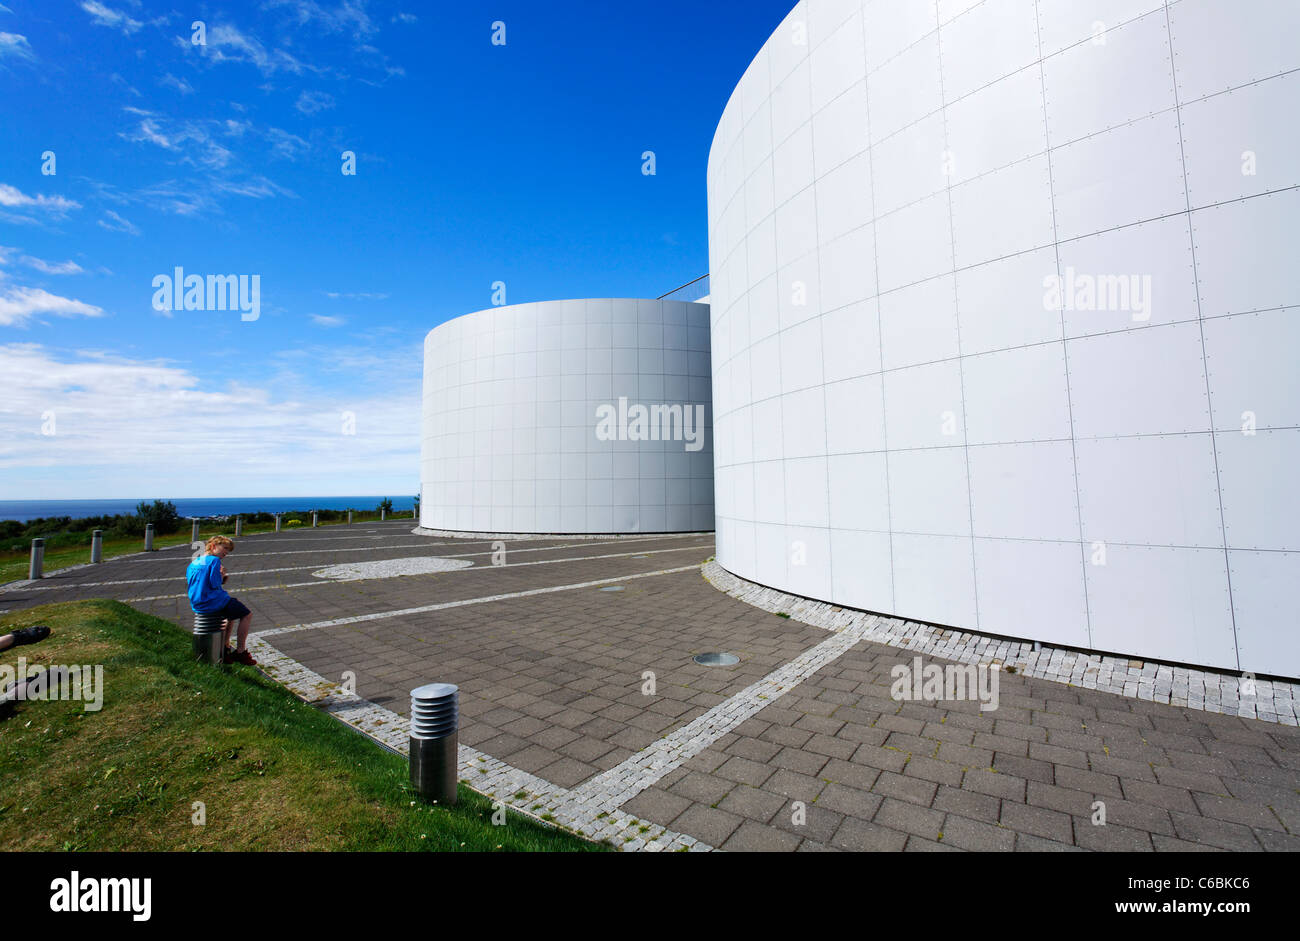 Perlan, the pearl, home of the Saga Museum and hot water storage for Reykjavik, Iceland - Stock Image